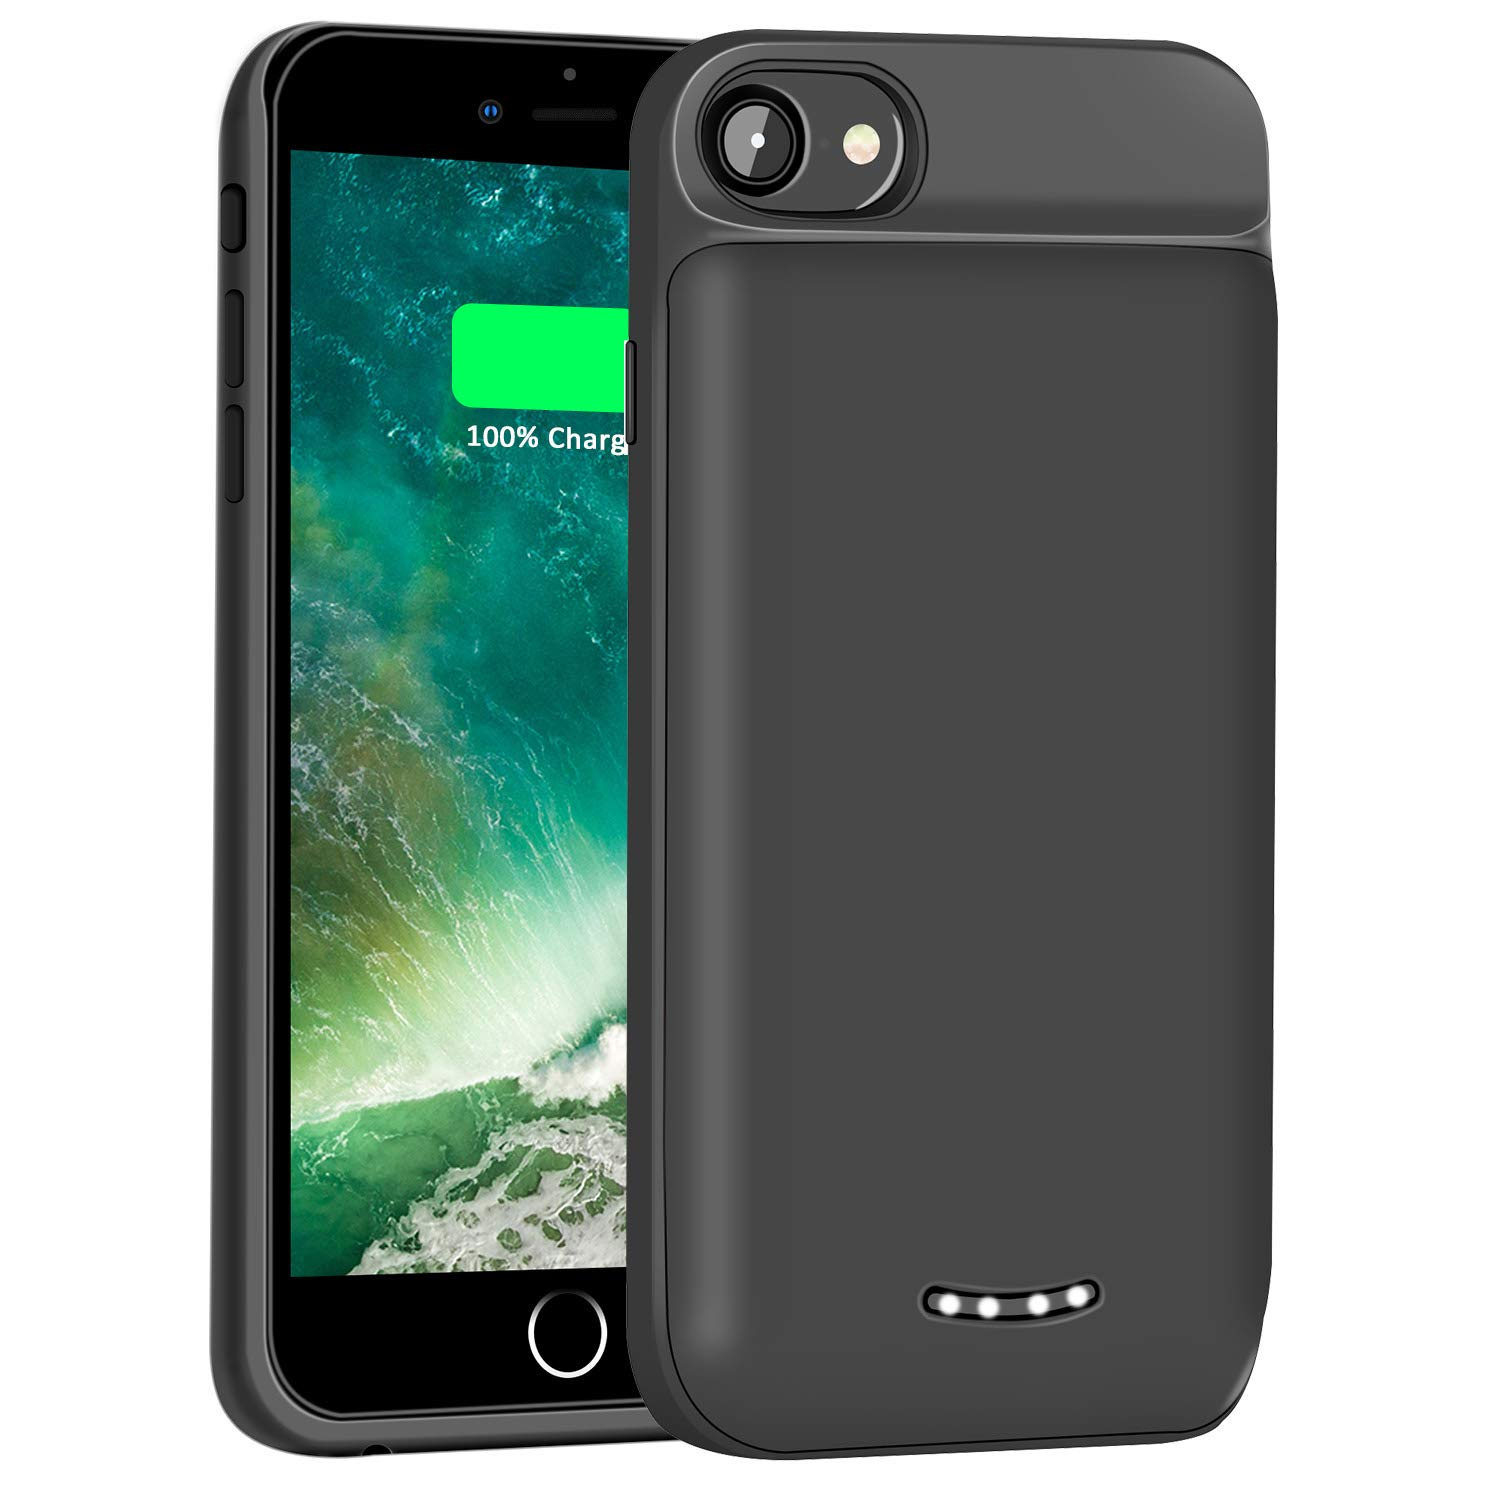 Tech Care For iPhone 8 7 6S 6 Battery Case 5000mAh Portable Charging Case Rechargeable Protective Extended Battery for iPhone 8 7 6S 6 4.7 Inch (Black)